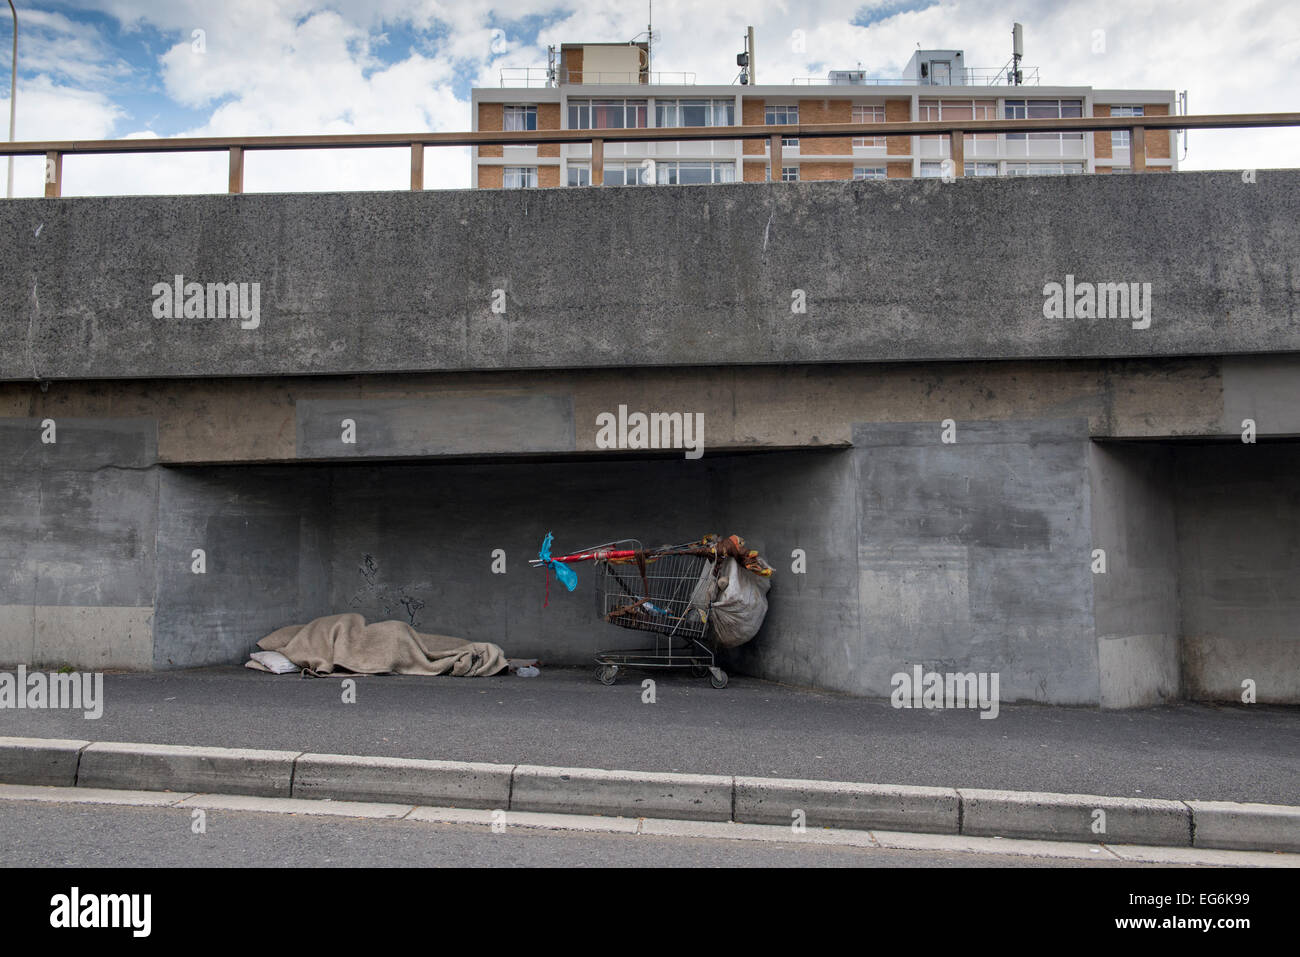 Sleeping homeless and shopping cart under a highway bridge, Cape Town, Western Cape, South Africa - Stock Image